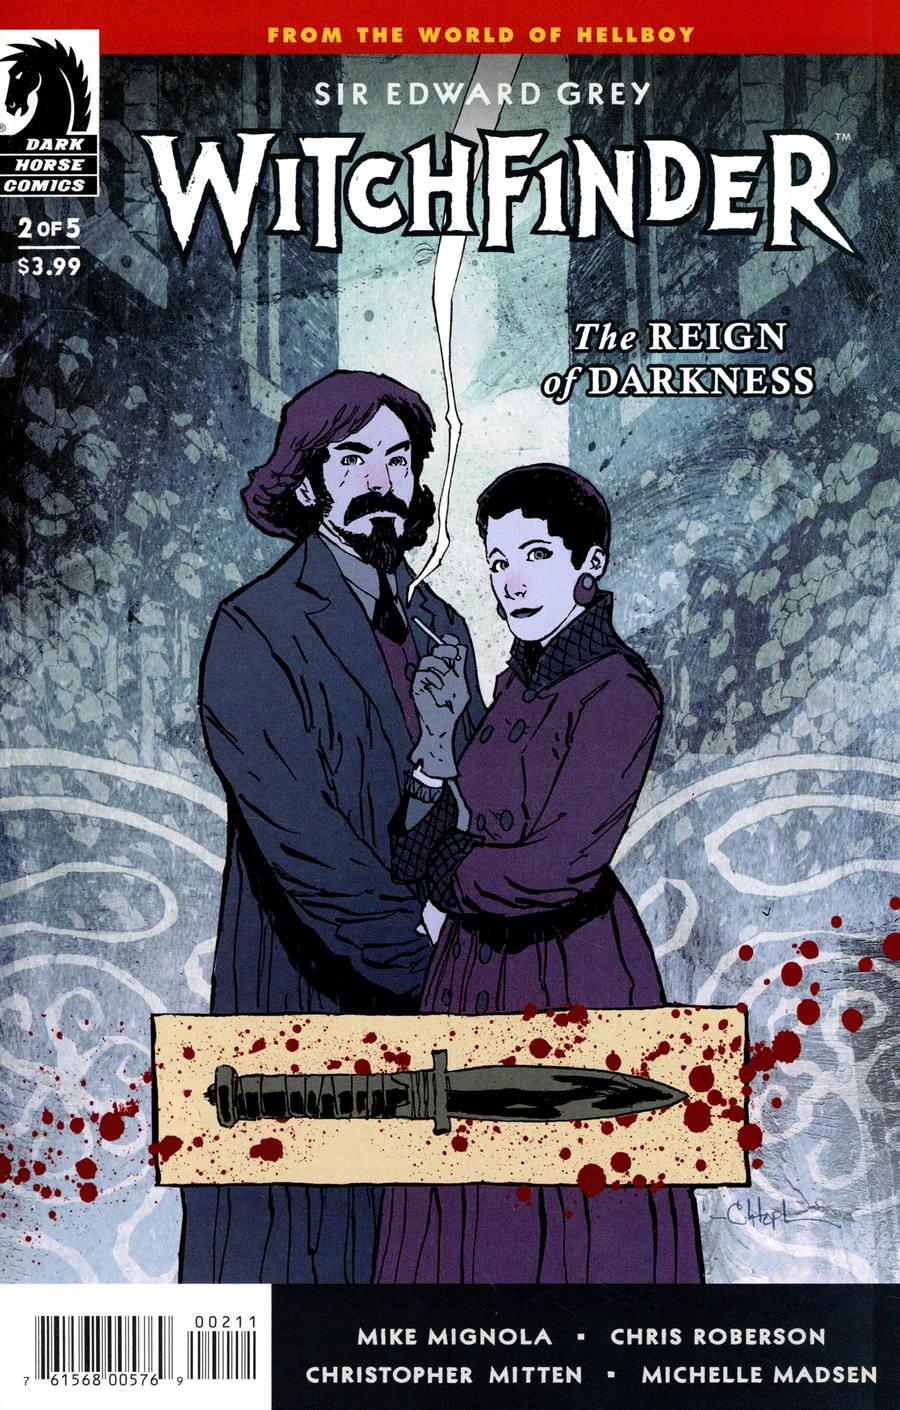 Witchfinder Reign Of Darkness #2